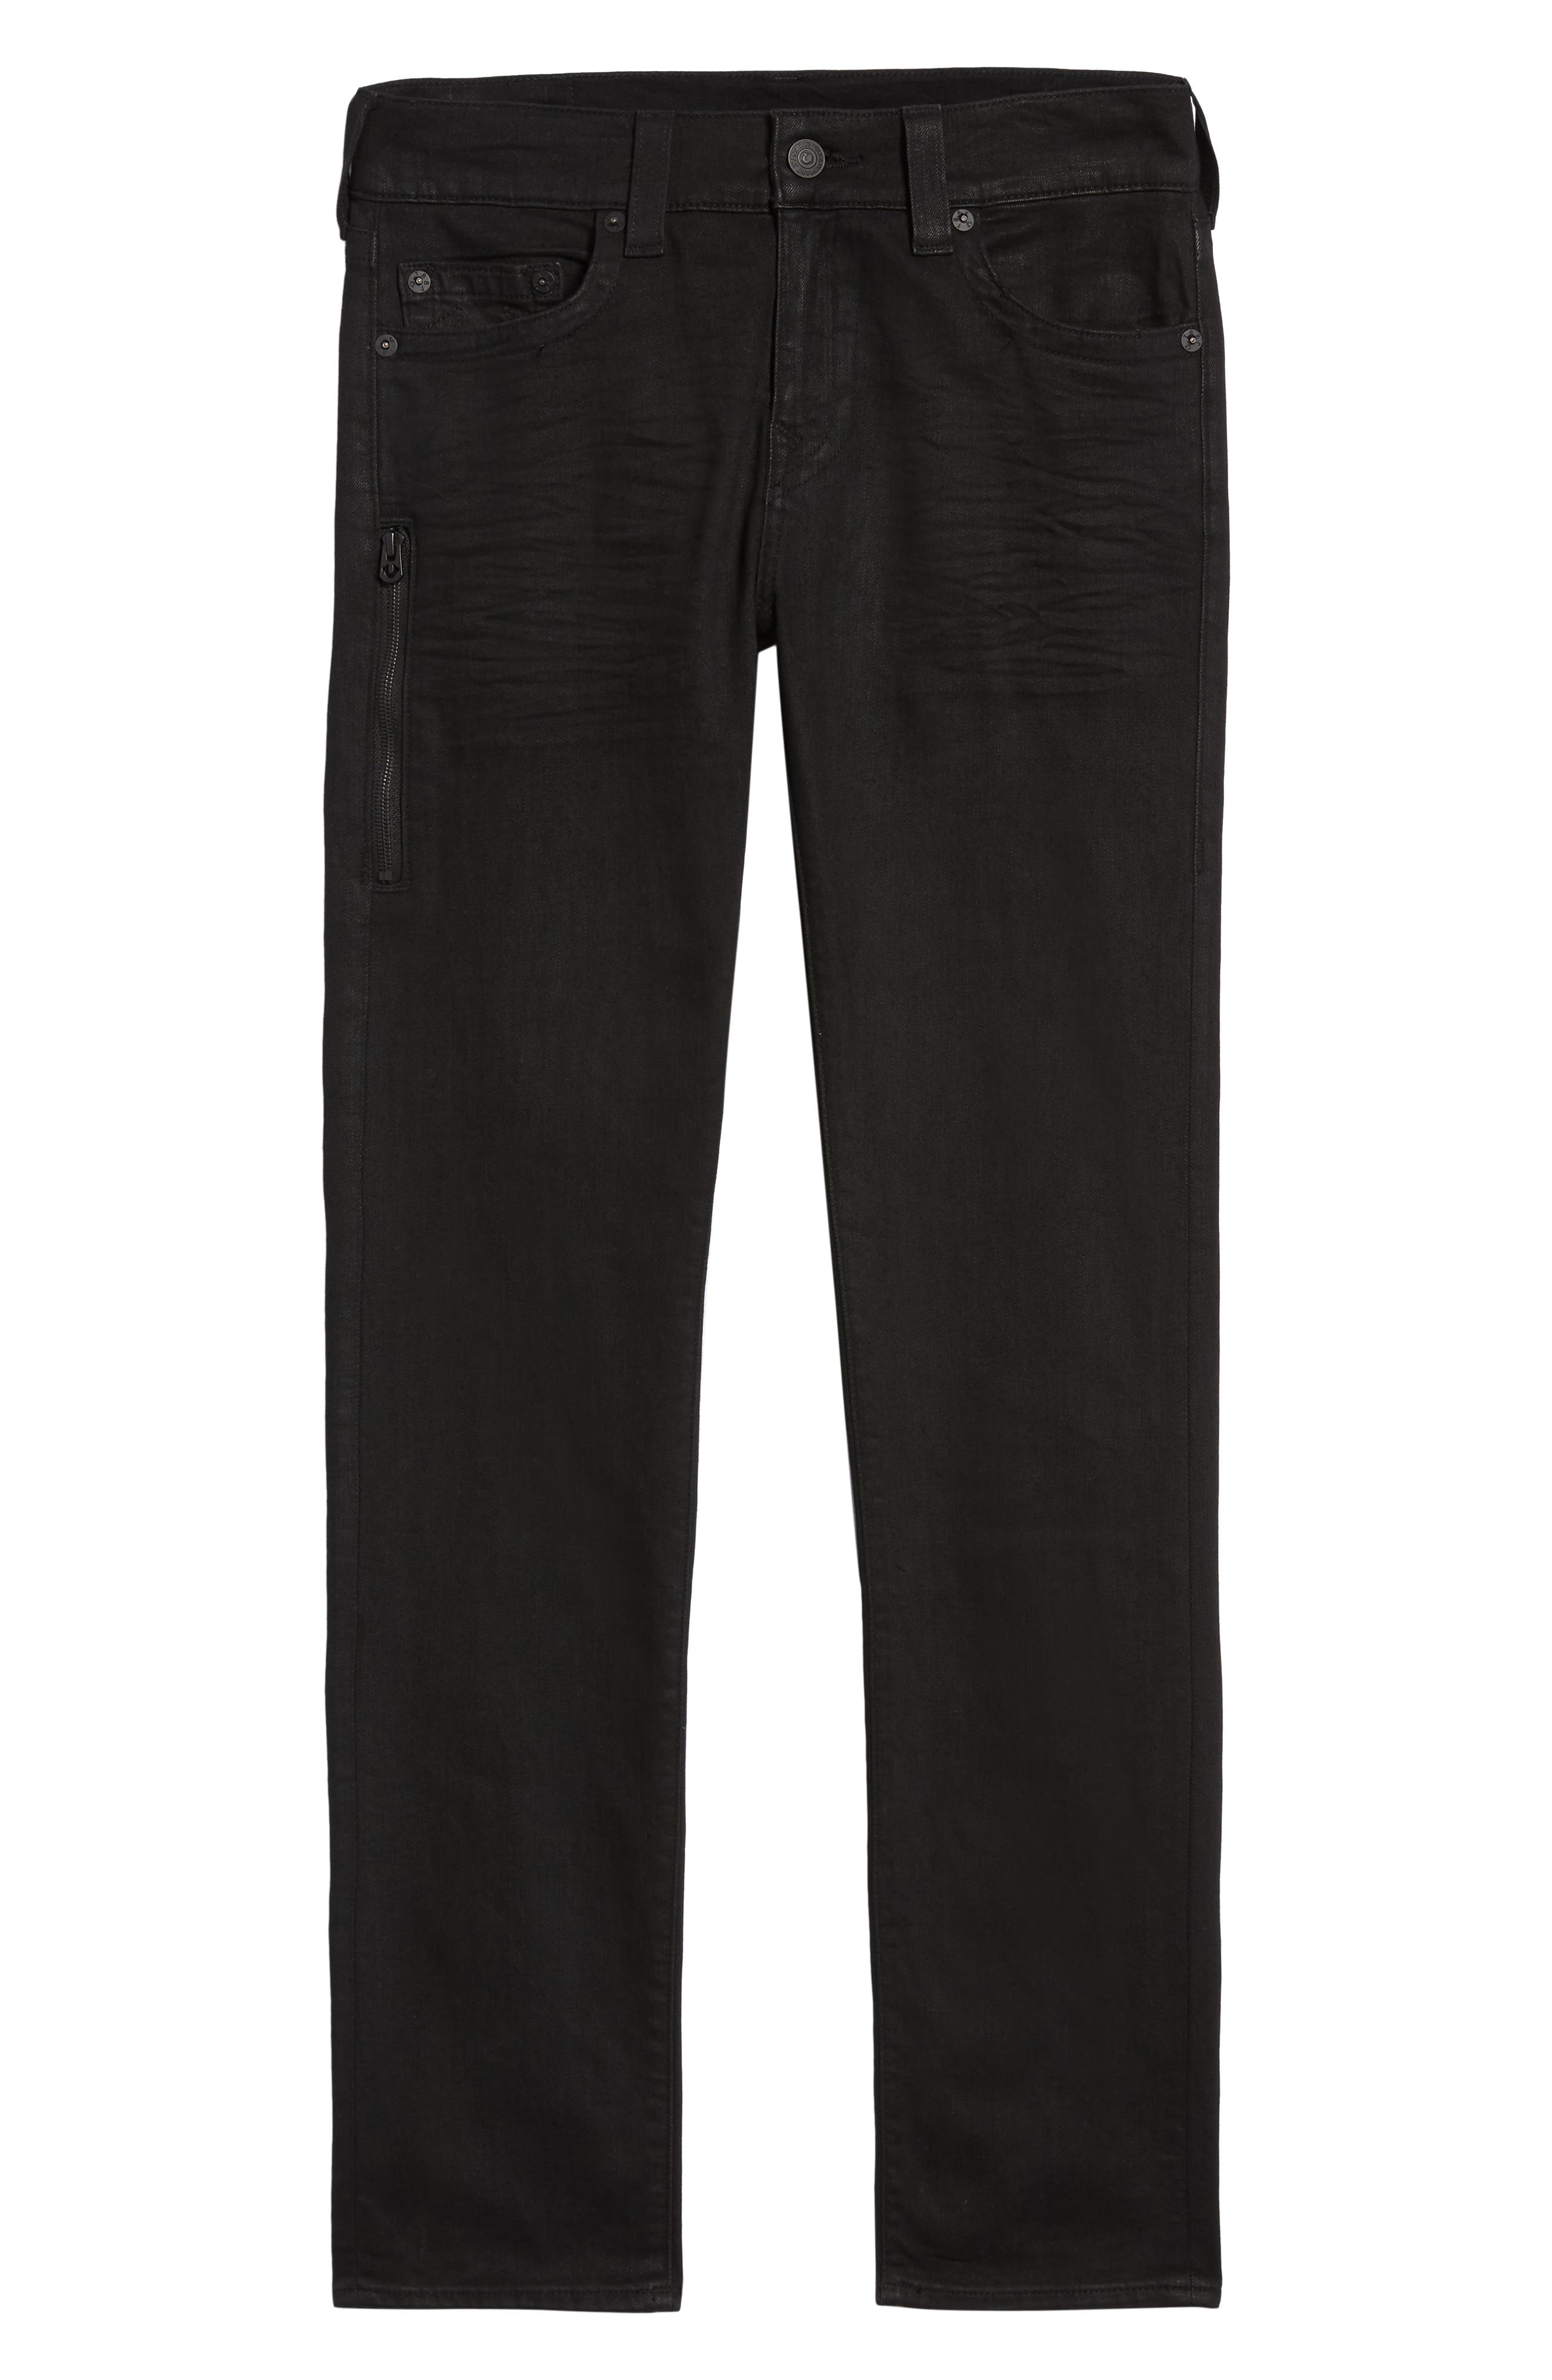 Rocco Skinny Fit Jeans,                             Alternate thumbnail 6, color,                             MIDNIGHT BLACK COATED